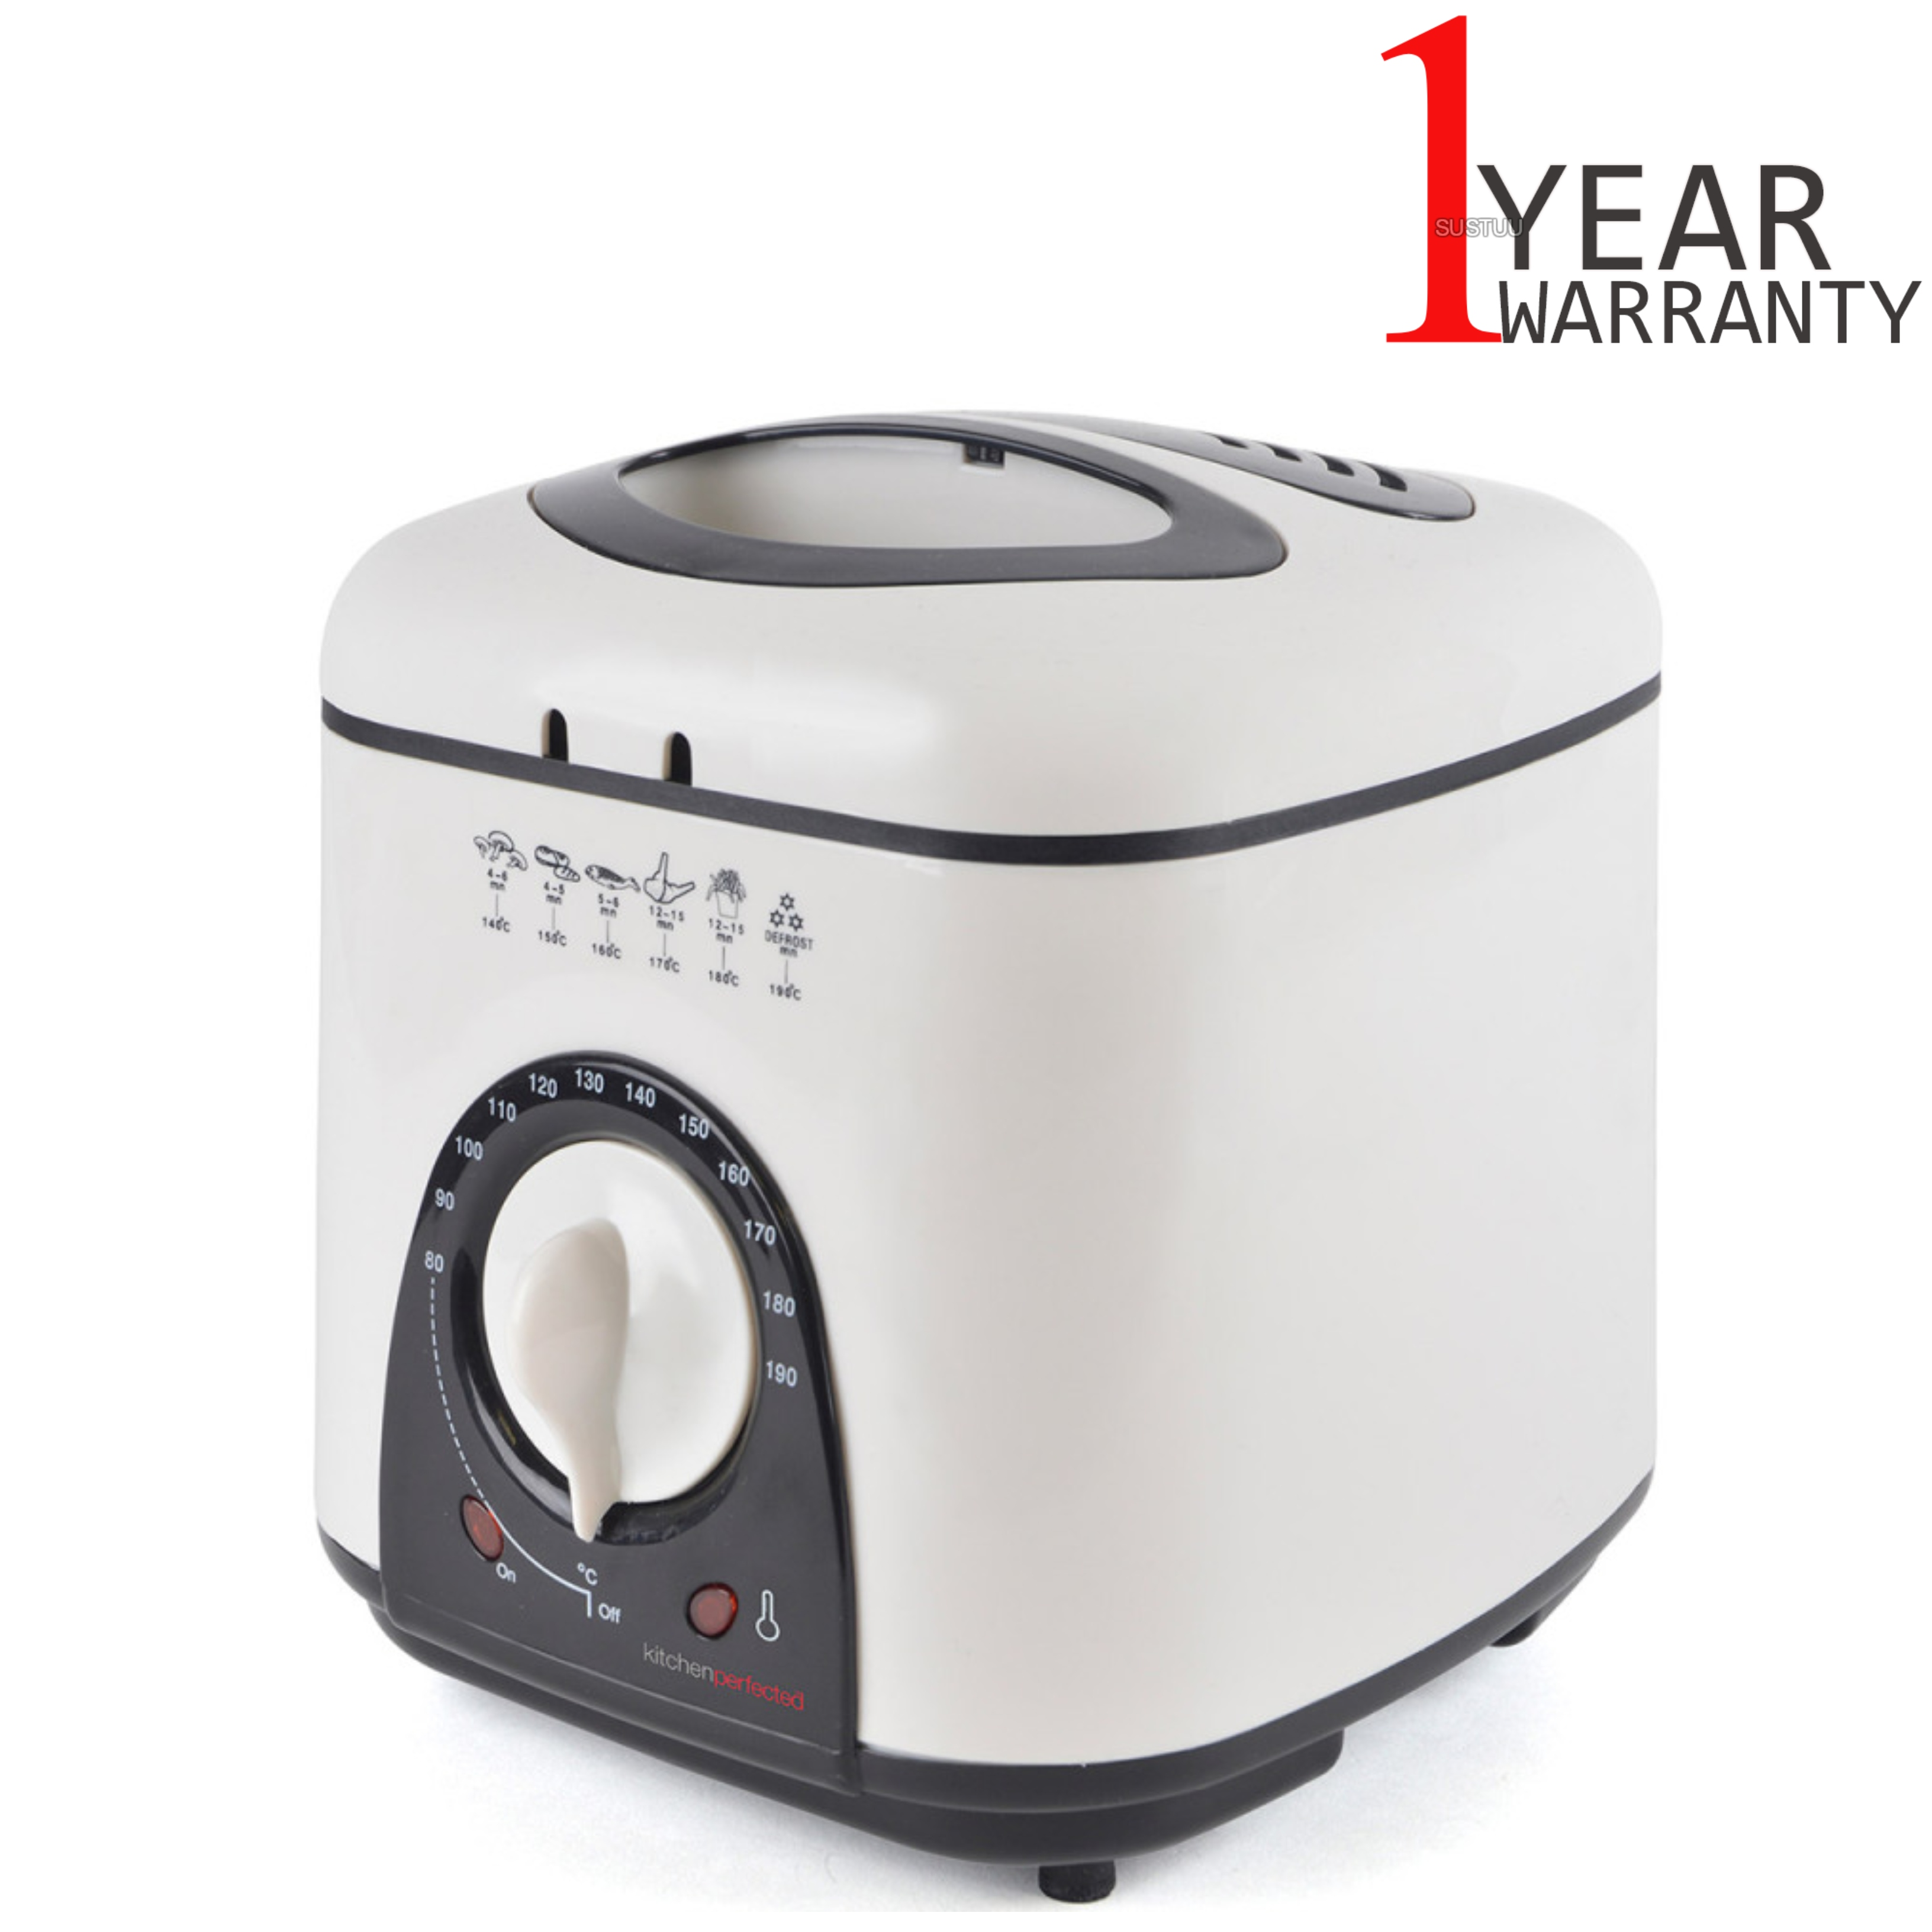 Lloytron E6010WI Kitchen Perfected Compact Deep Fryer 1L | Variable Thermostat | NEW